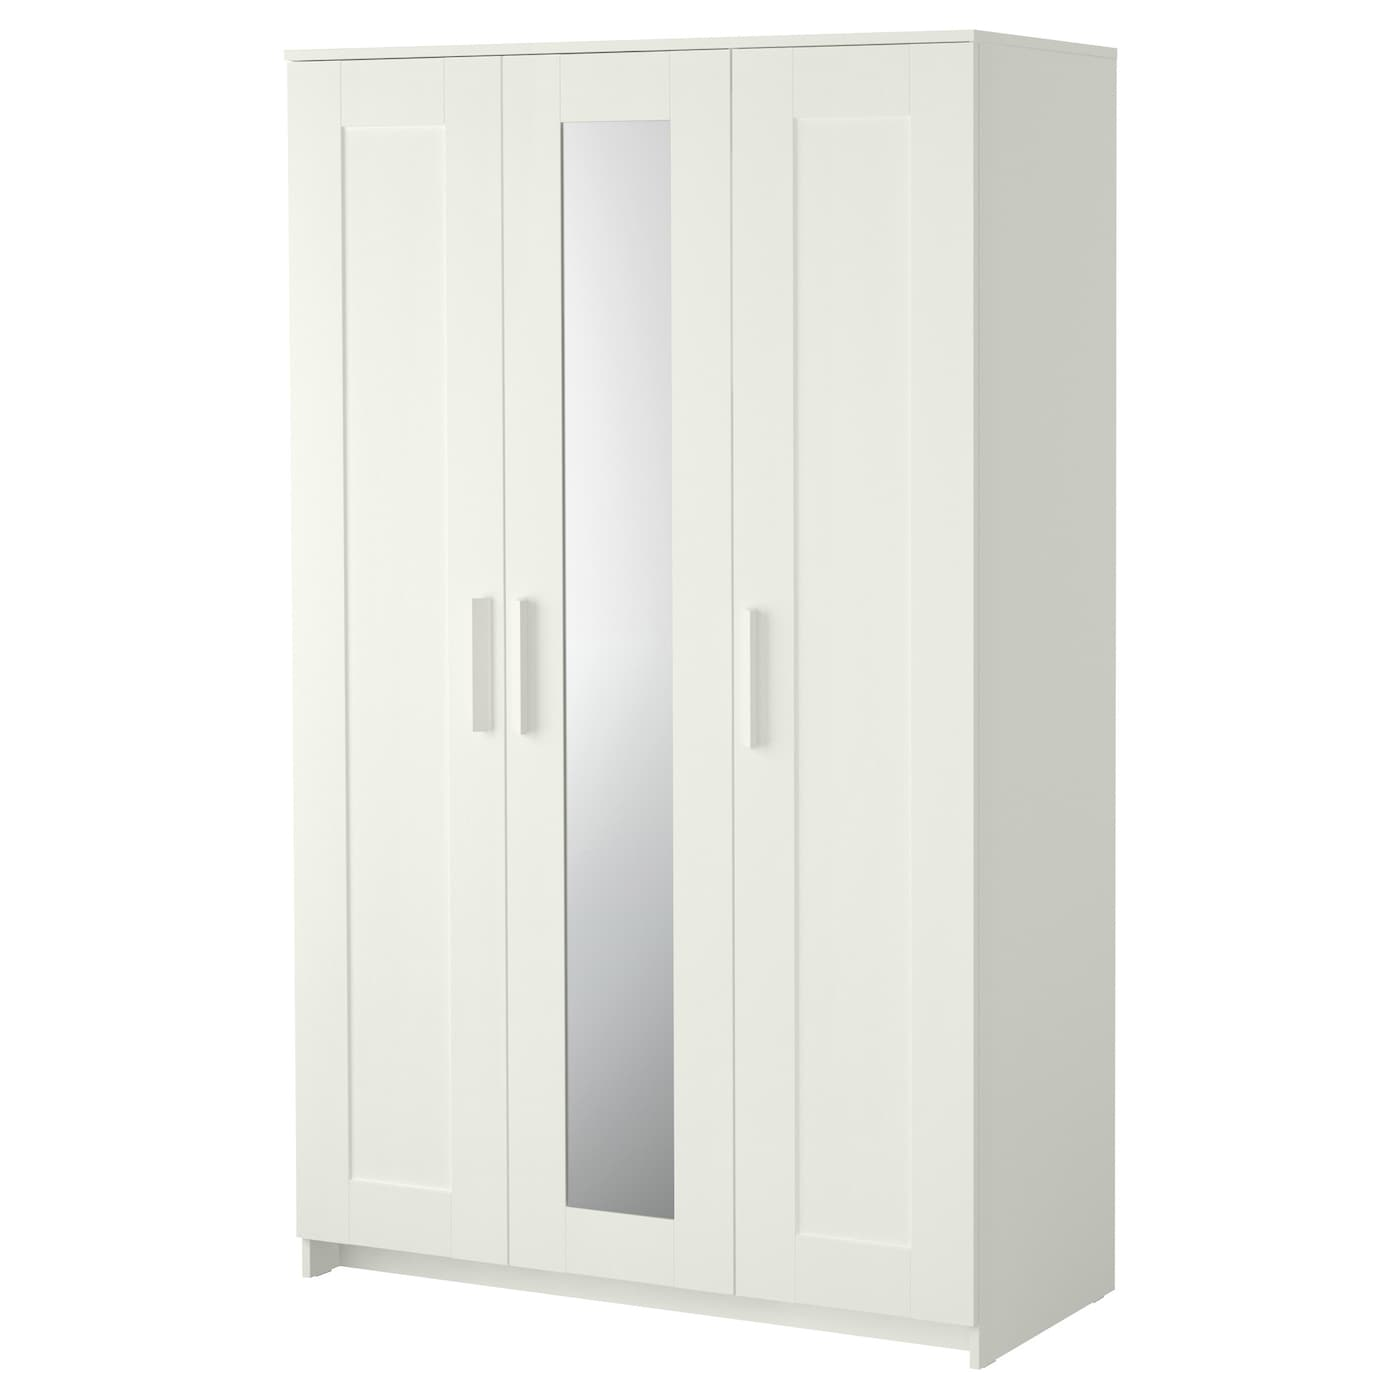 ikea brimnes wardrobe with doors adjustable hinges ensure that the doors hang straight